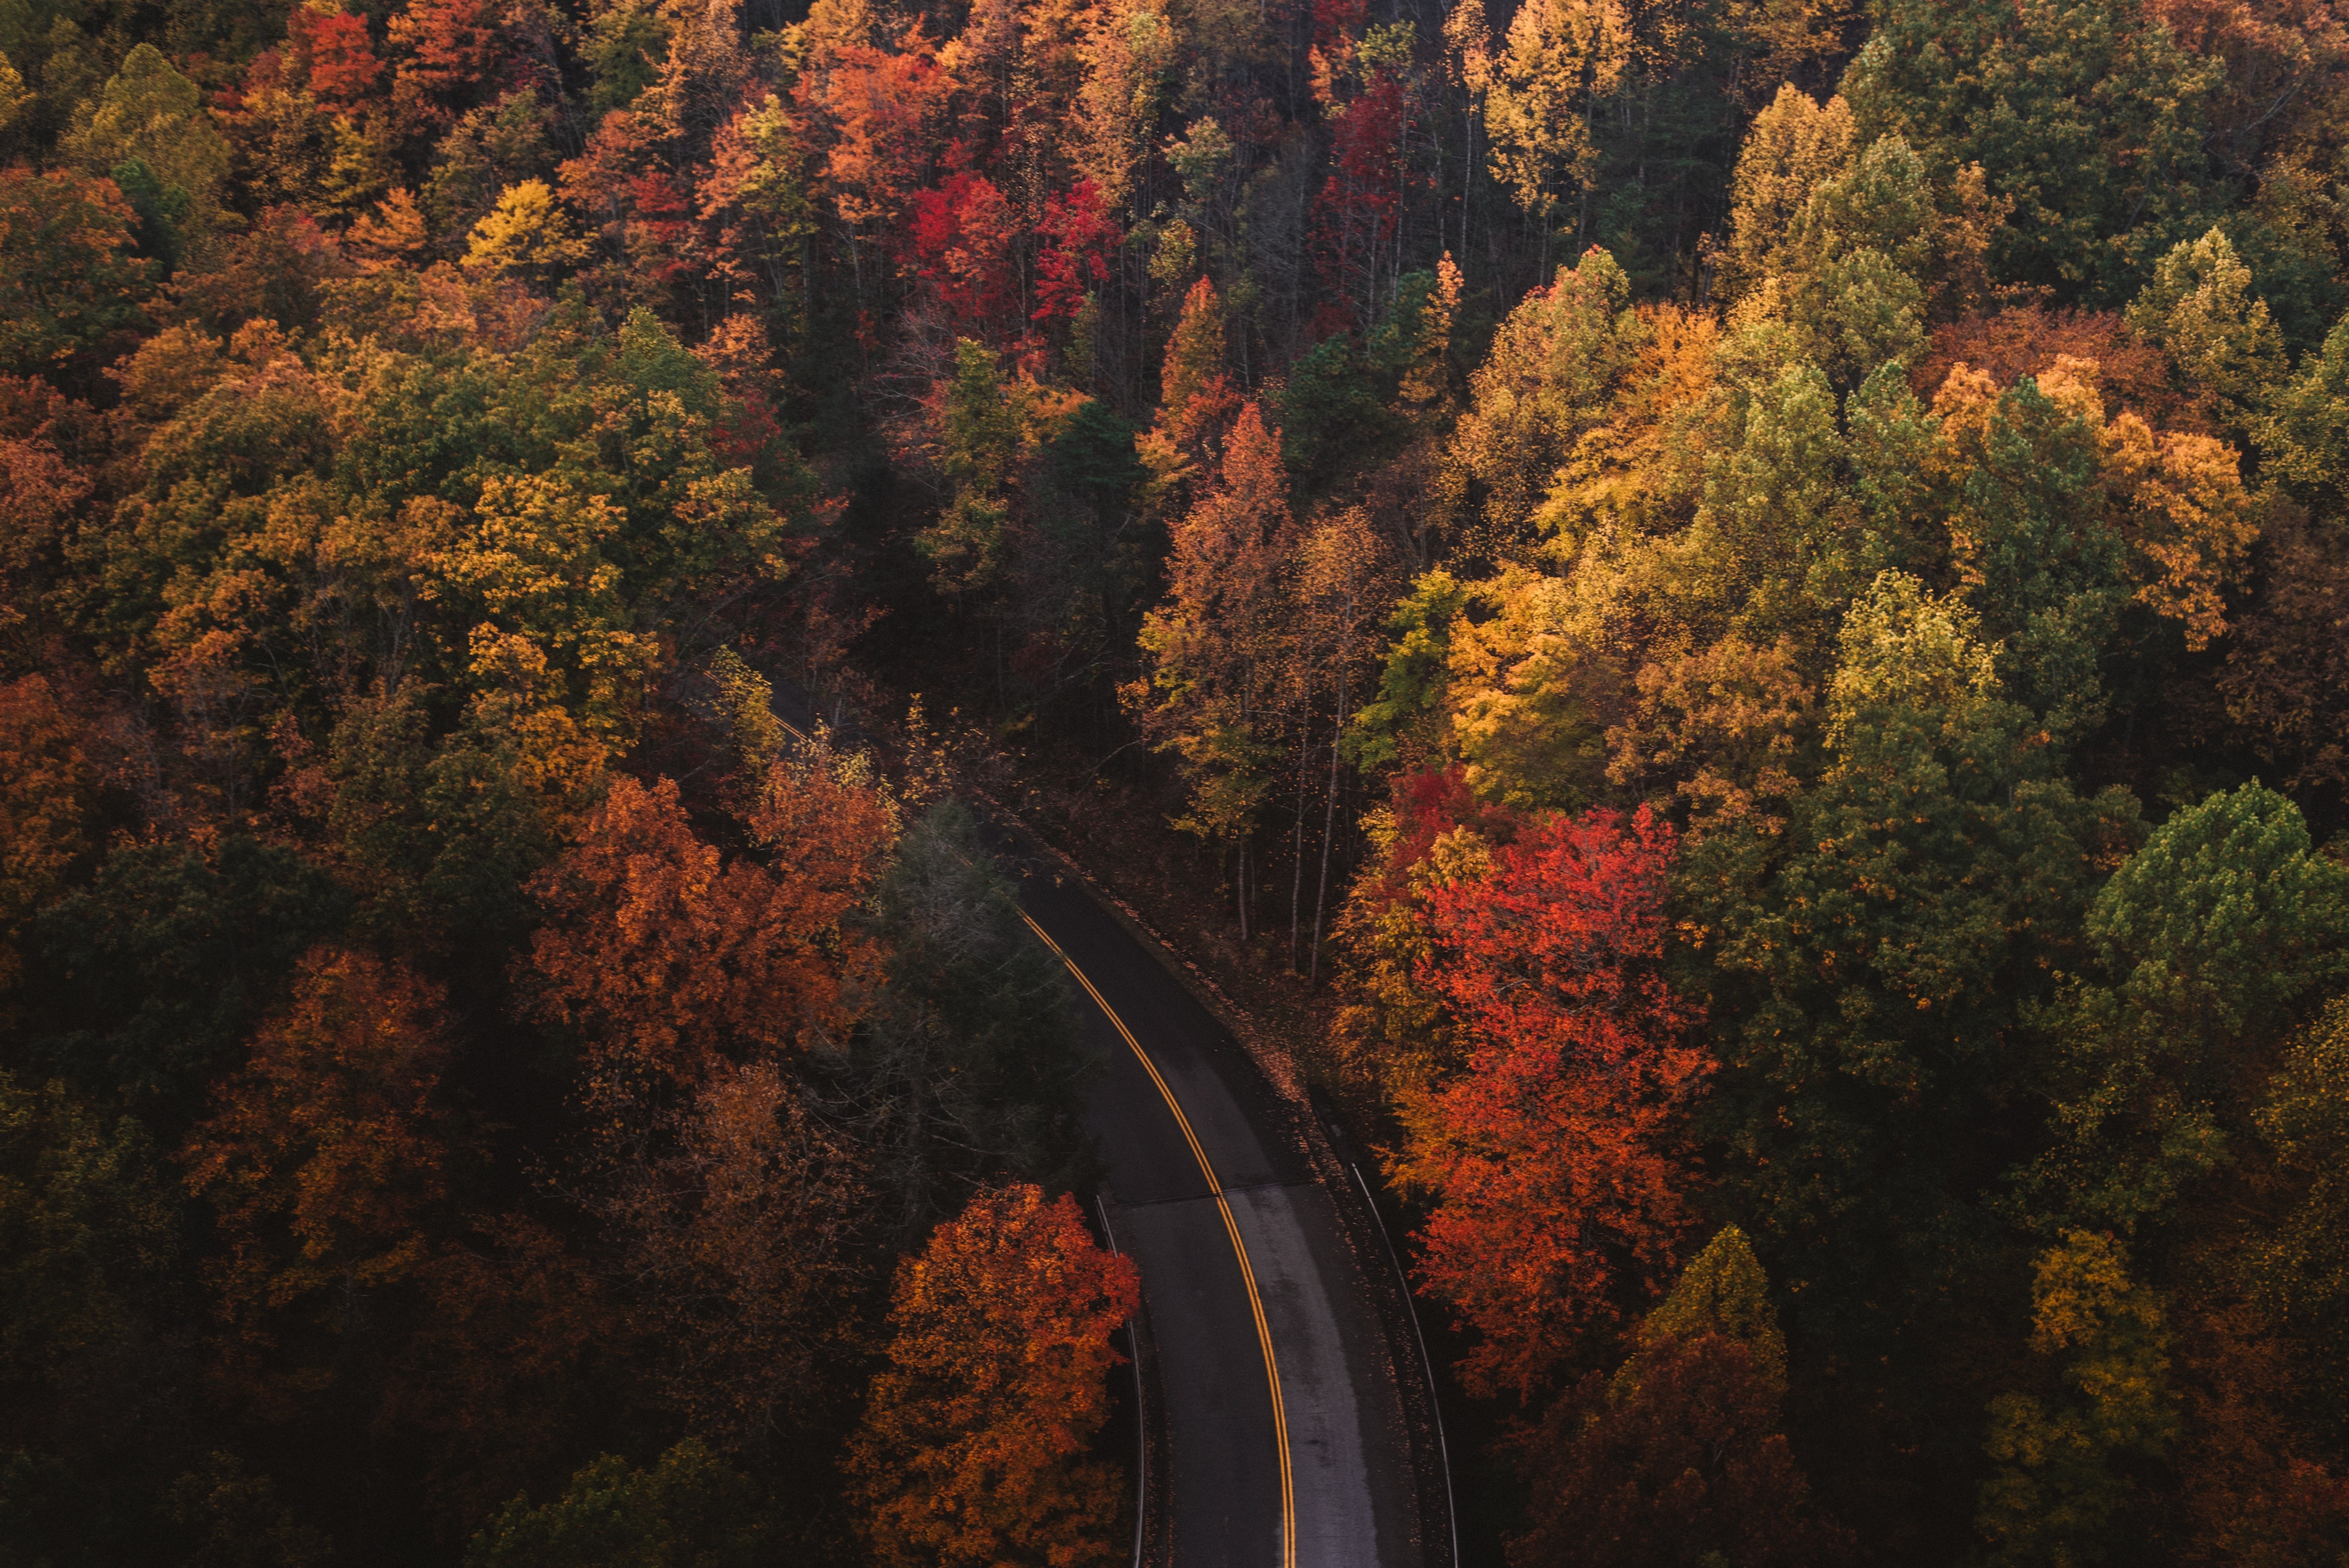 Overhead photo of a road winding through trees with red, orange and yellow leaves. Photo courtesy of Chad Madden on Unsplash.